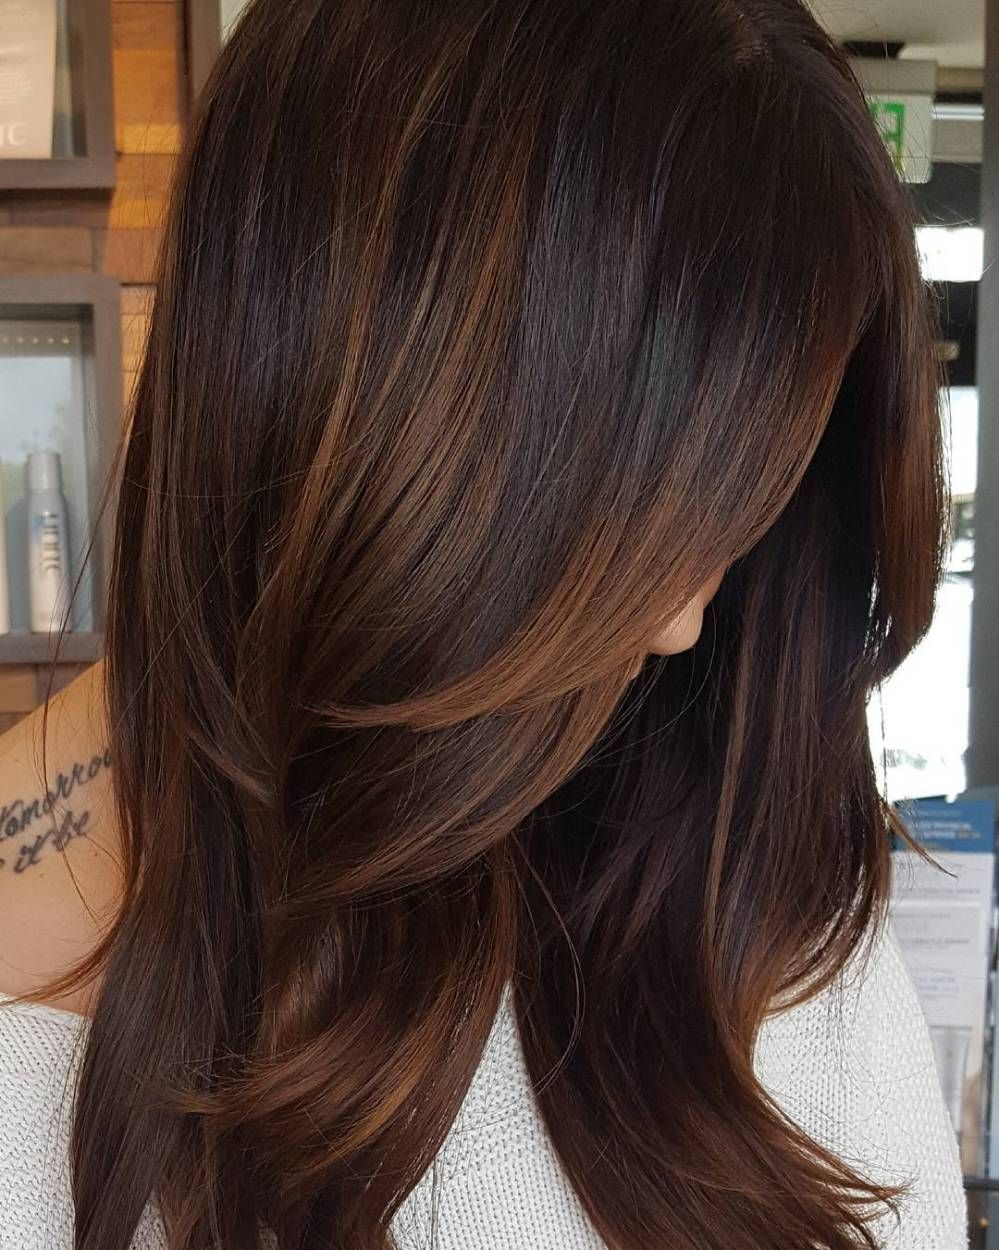 60 Hairstyles Featuring Dark Brown Hair With Highlights Dark Hair With Highlights Hair Styles Hair Highlights